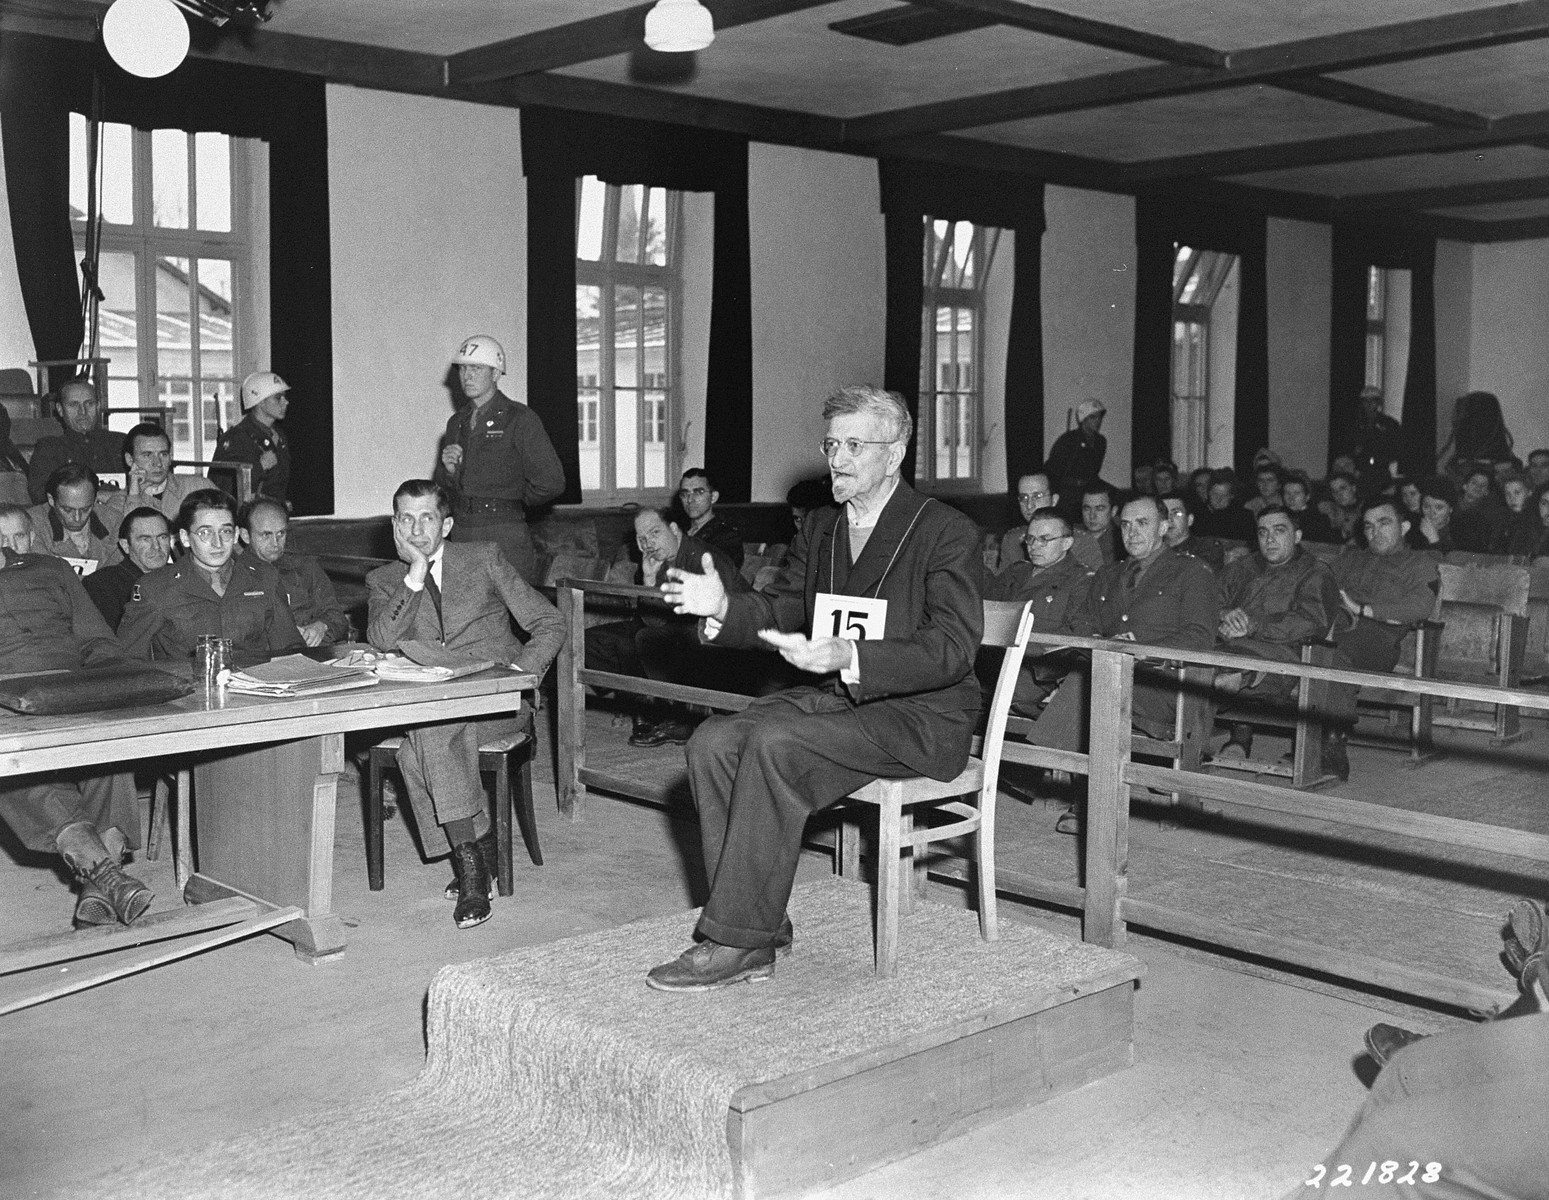 "Dr. Klaus Karl Schilling, a physician who infected over one thousand prisoners with malaria in his experiments at the Dachau camp, defends himself at the trial of former camp personnel and prisoners from Dachau.    In his appeal in English after cross examination, Schilling explained,  ""I have worked out this great labor.  It would be really a terrible loss if I could not finish this work.  I don't ask you as a court, I ask you personally to do what you can; to do what you can to help me that I may finish this report.  I need only a table and a chair and a typewriter.  It would be an enormous help for science, for my colleagues, and a good part to rehabilitate myself.""  His voice then broke and he cried."